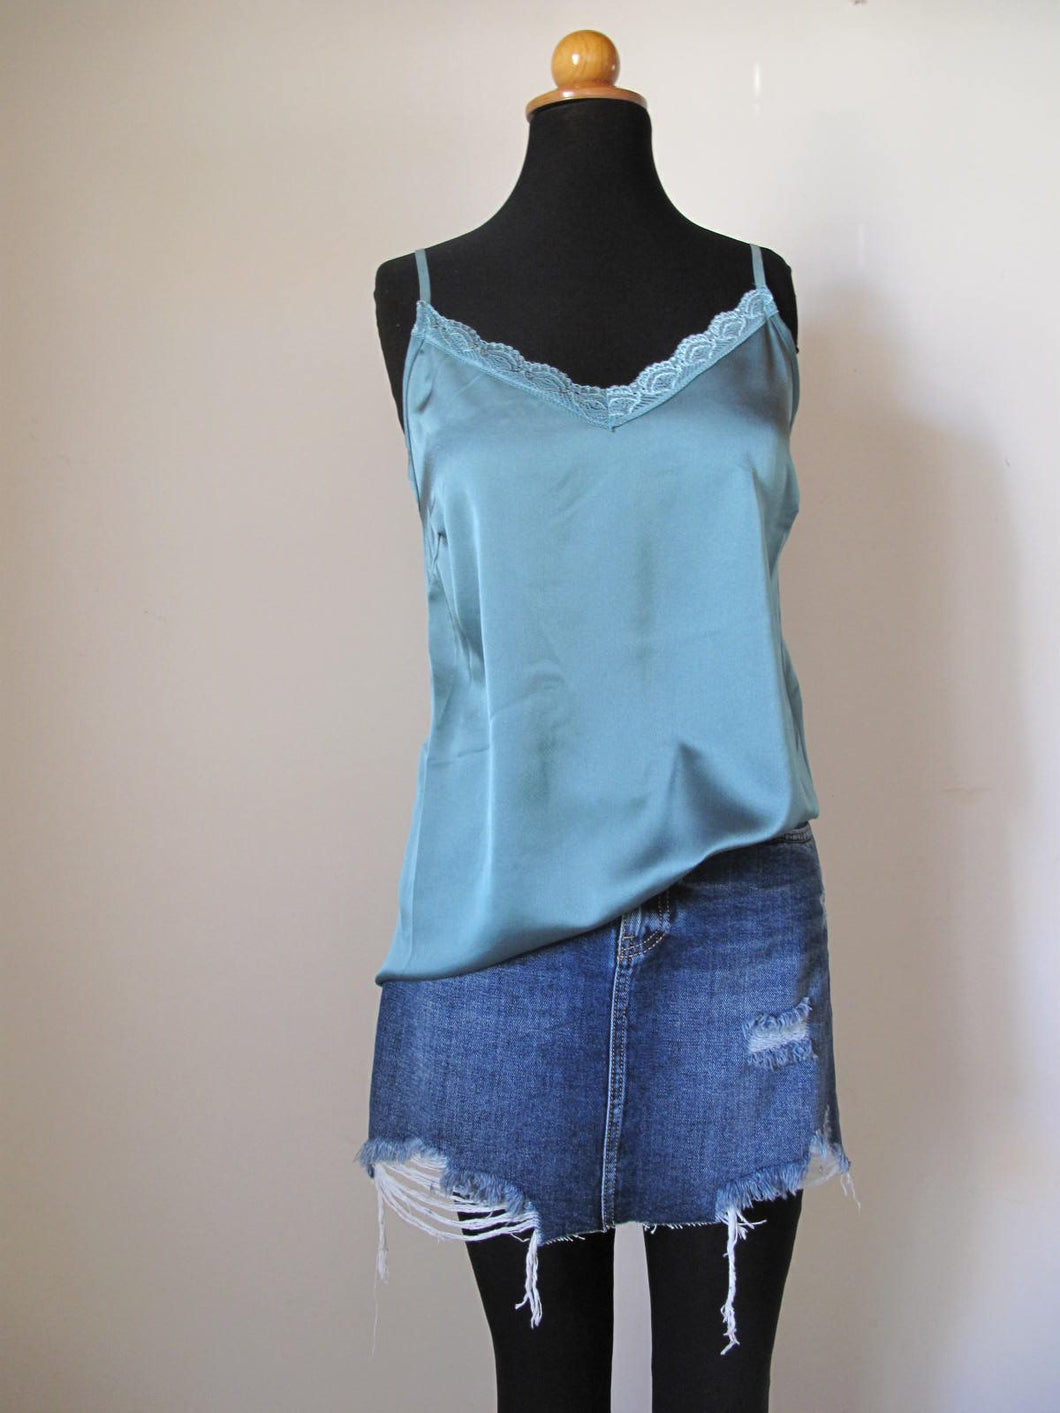 Jade blouse with thin strap